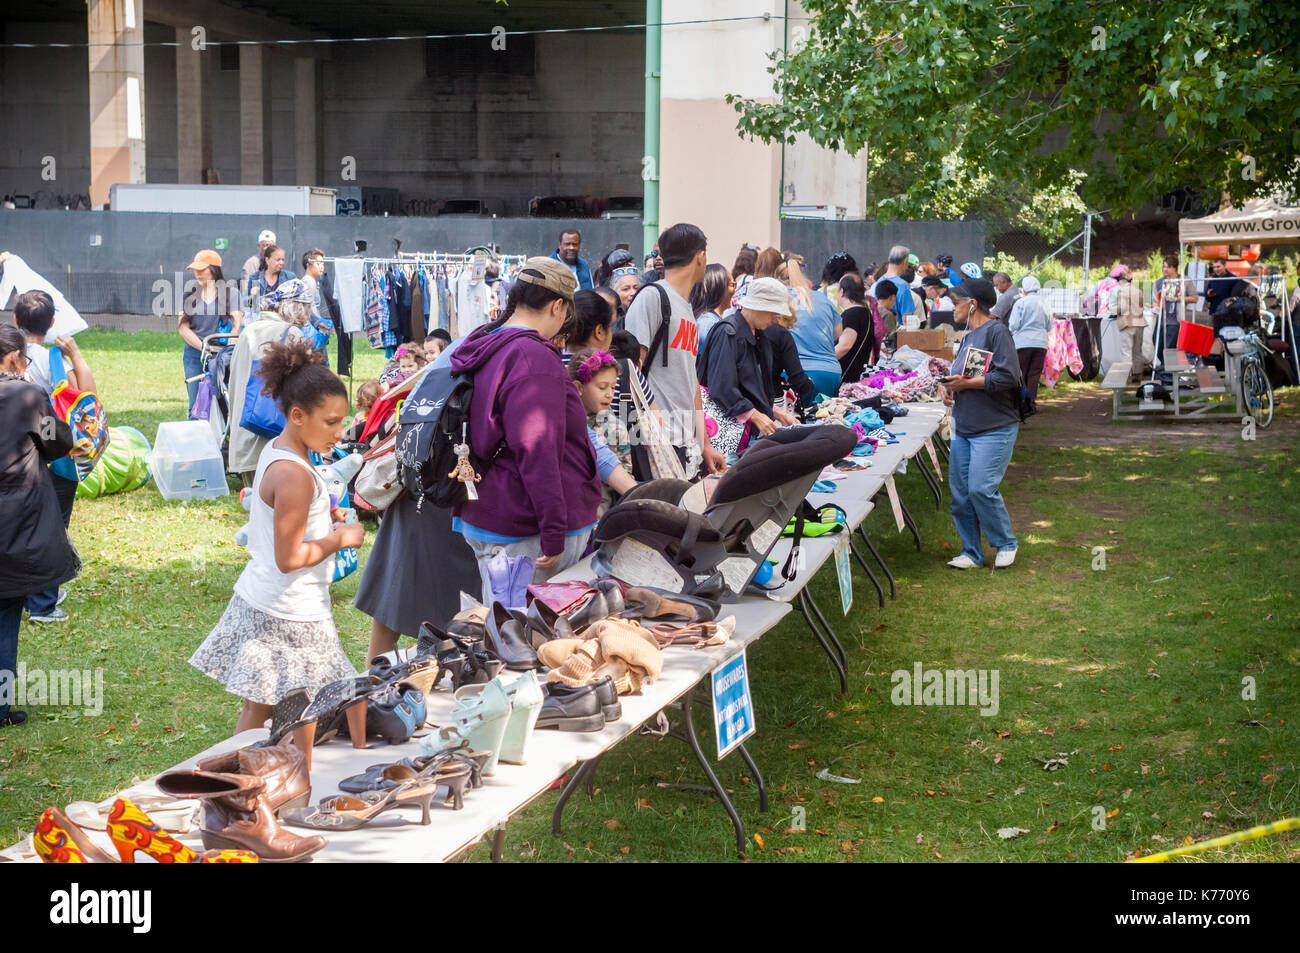 Thrifty shoppers at a free Stop 'N' Swap event in Riverside Park in New York on Sunday, September 10, 2017. GrowNYC's Office of Recycling Outreach and Education sponsored the free event where people can trade reusable, unwanted belongings in exchange for items left by others on a first come, first serve basis.  (© Frances M. Roberts) - Stock Image